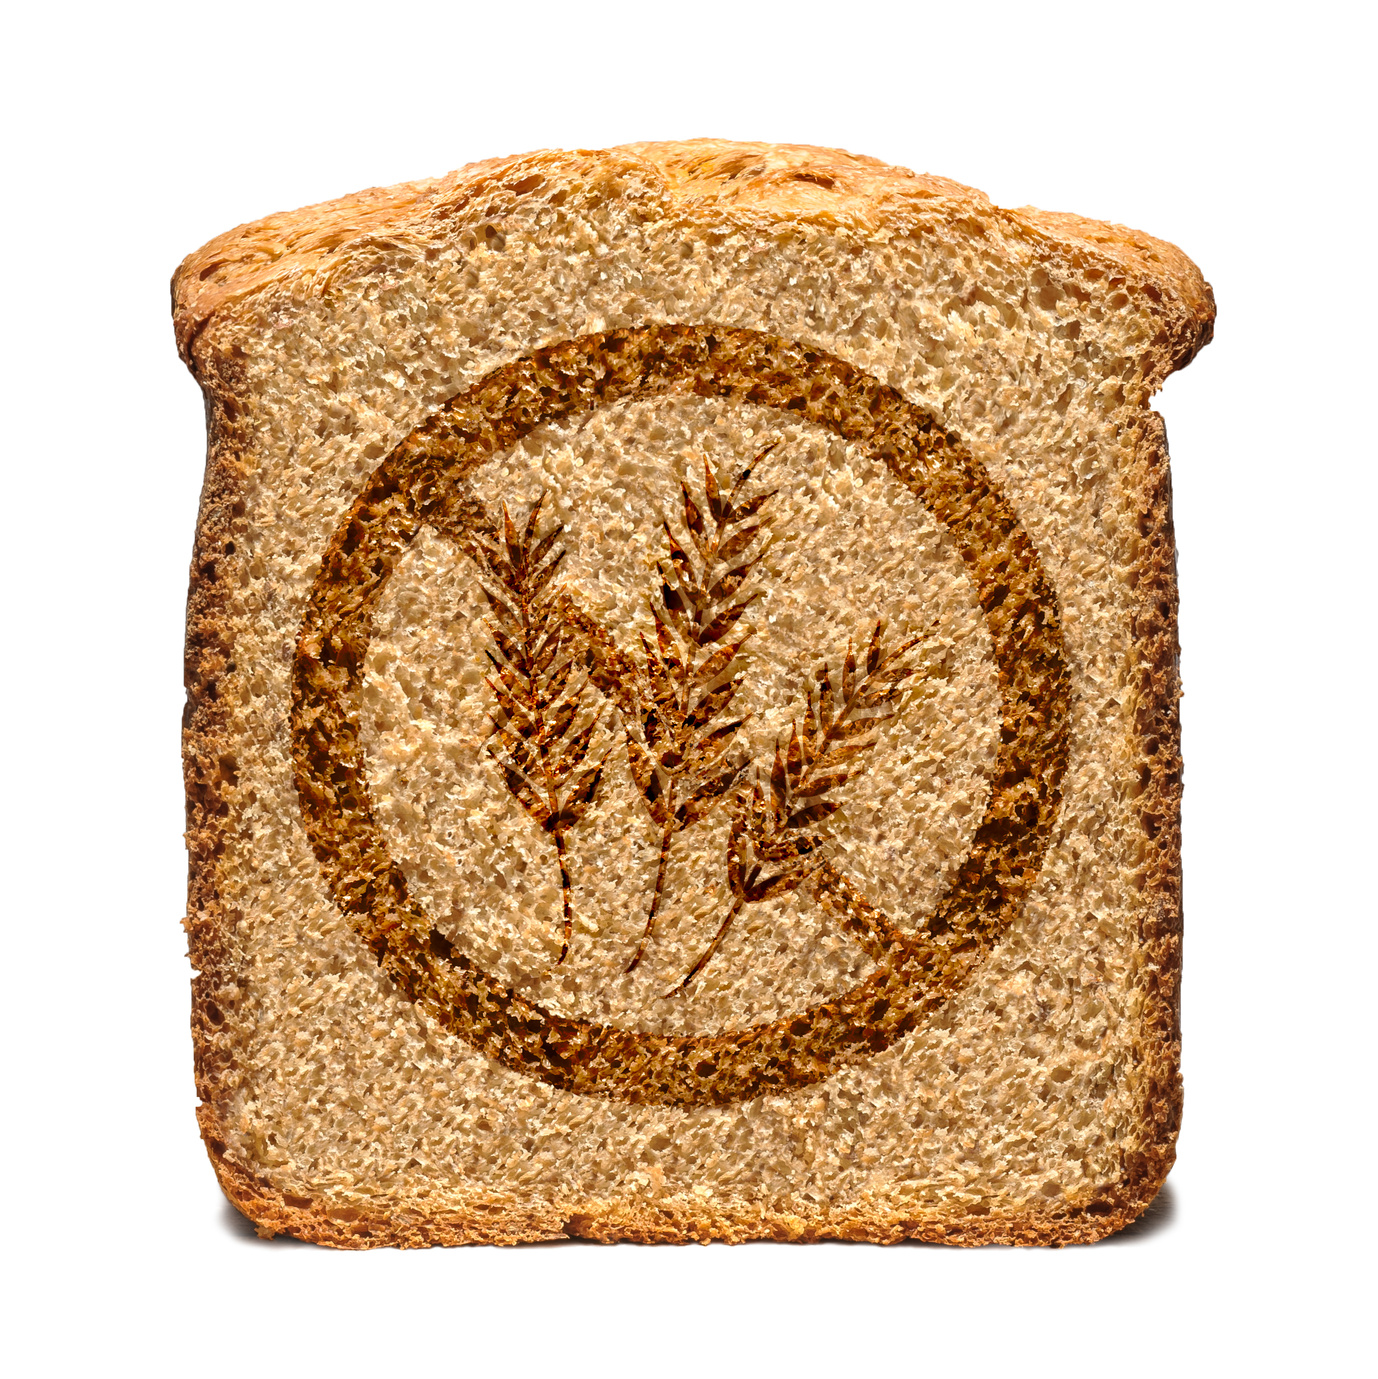 HOW WHEAT DAMAGES OUR BODIES AND CAUSES WEIGHT GAIN